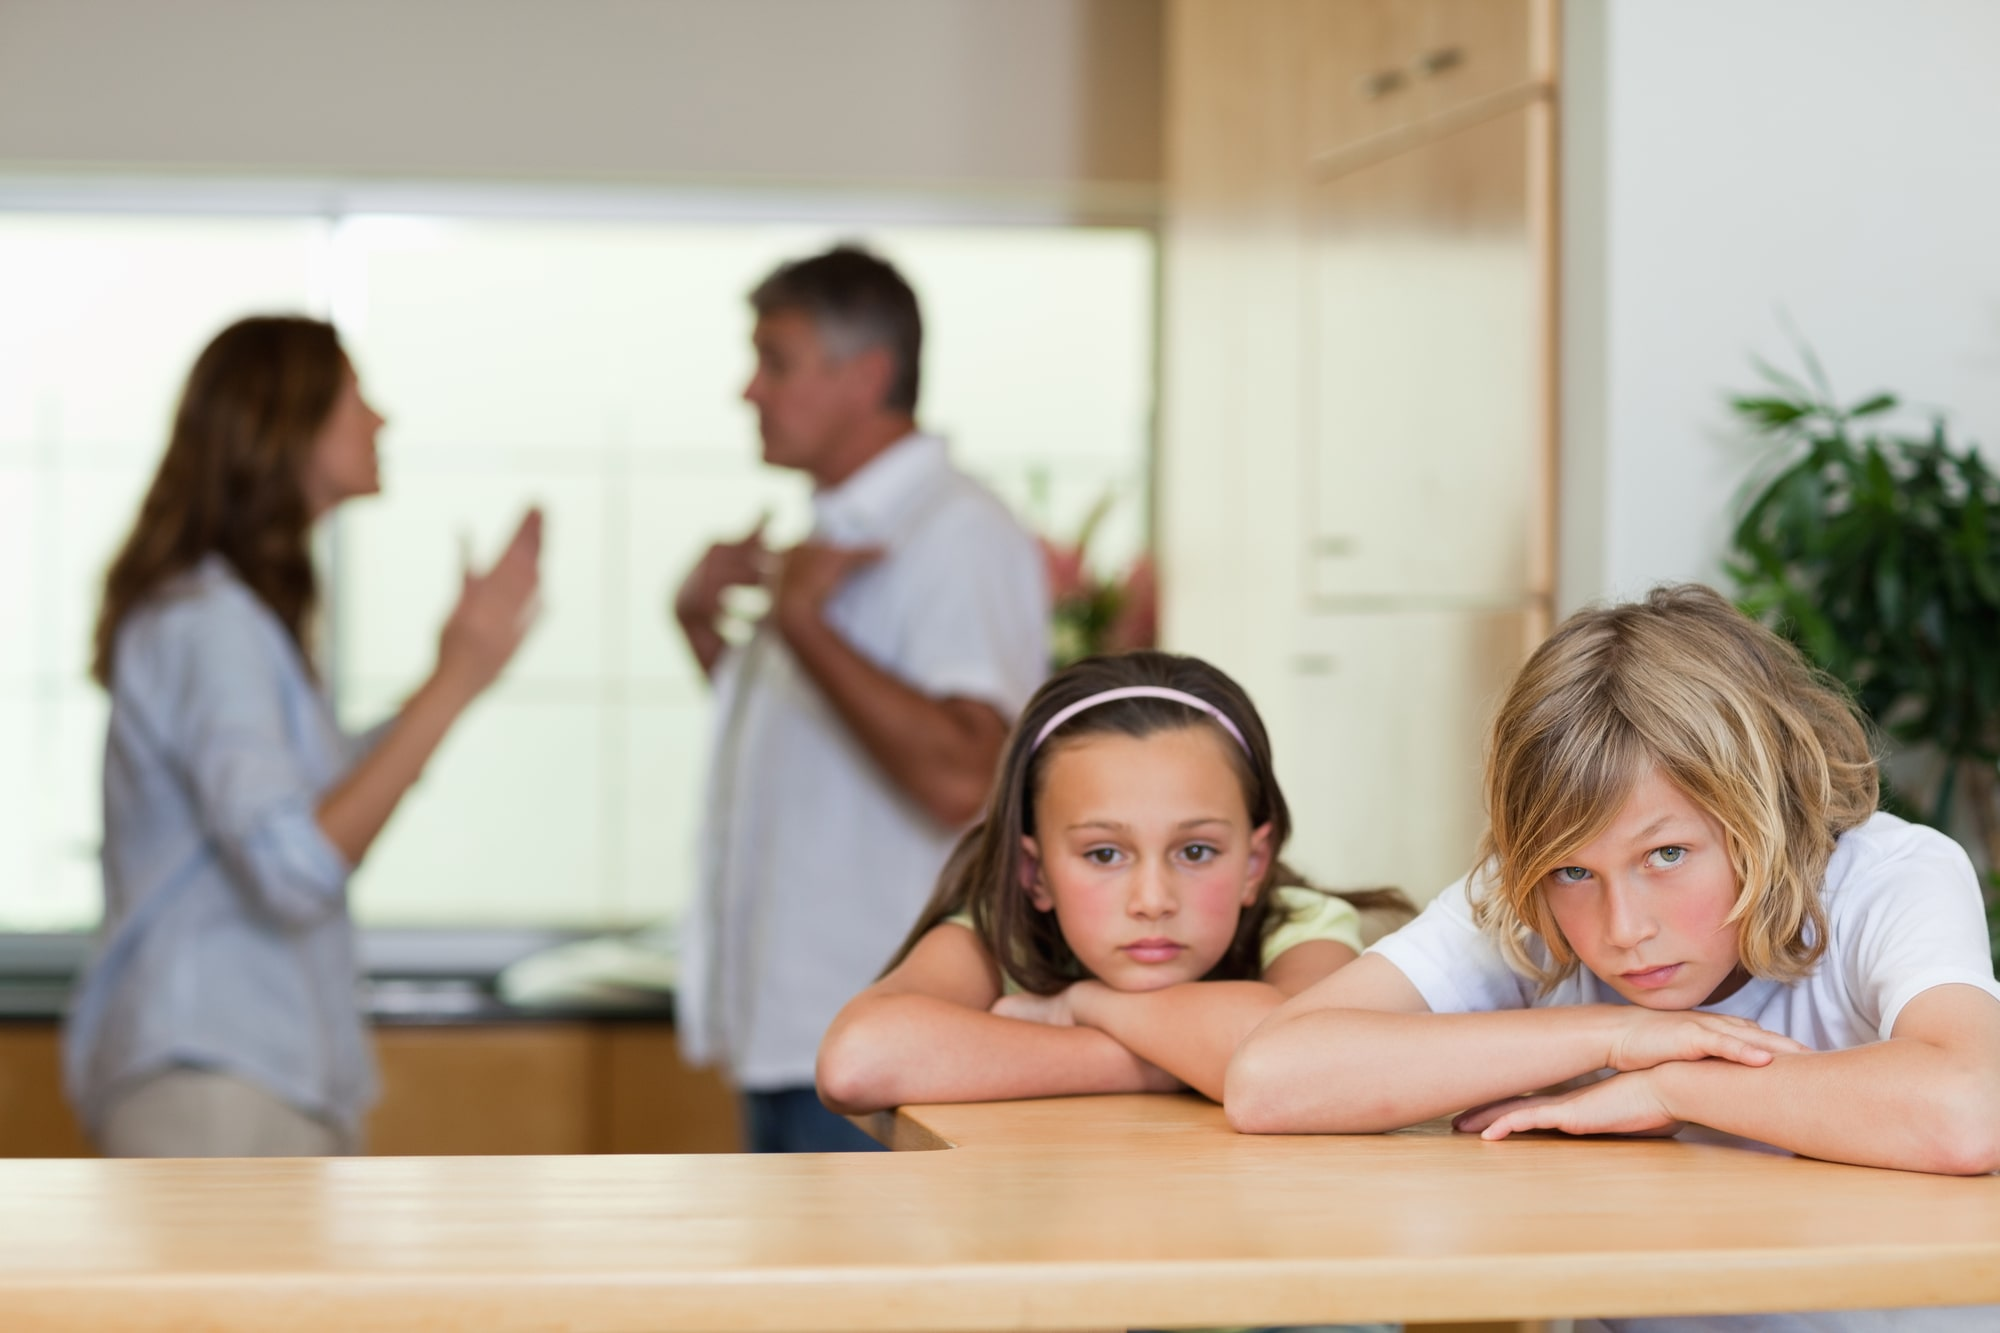 parents arguing in the kitchen with children nearby